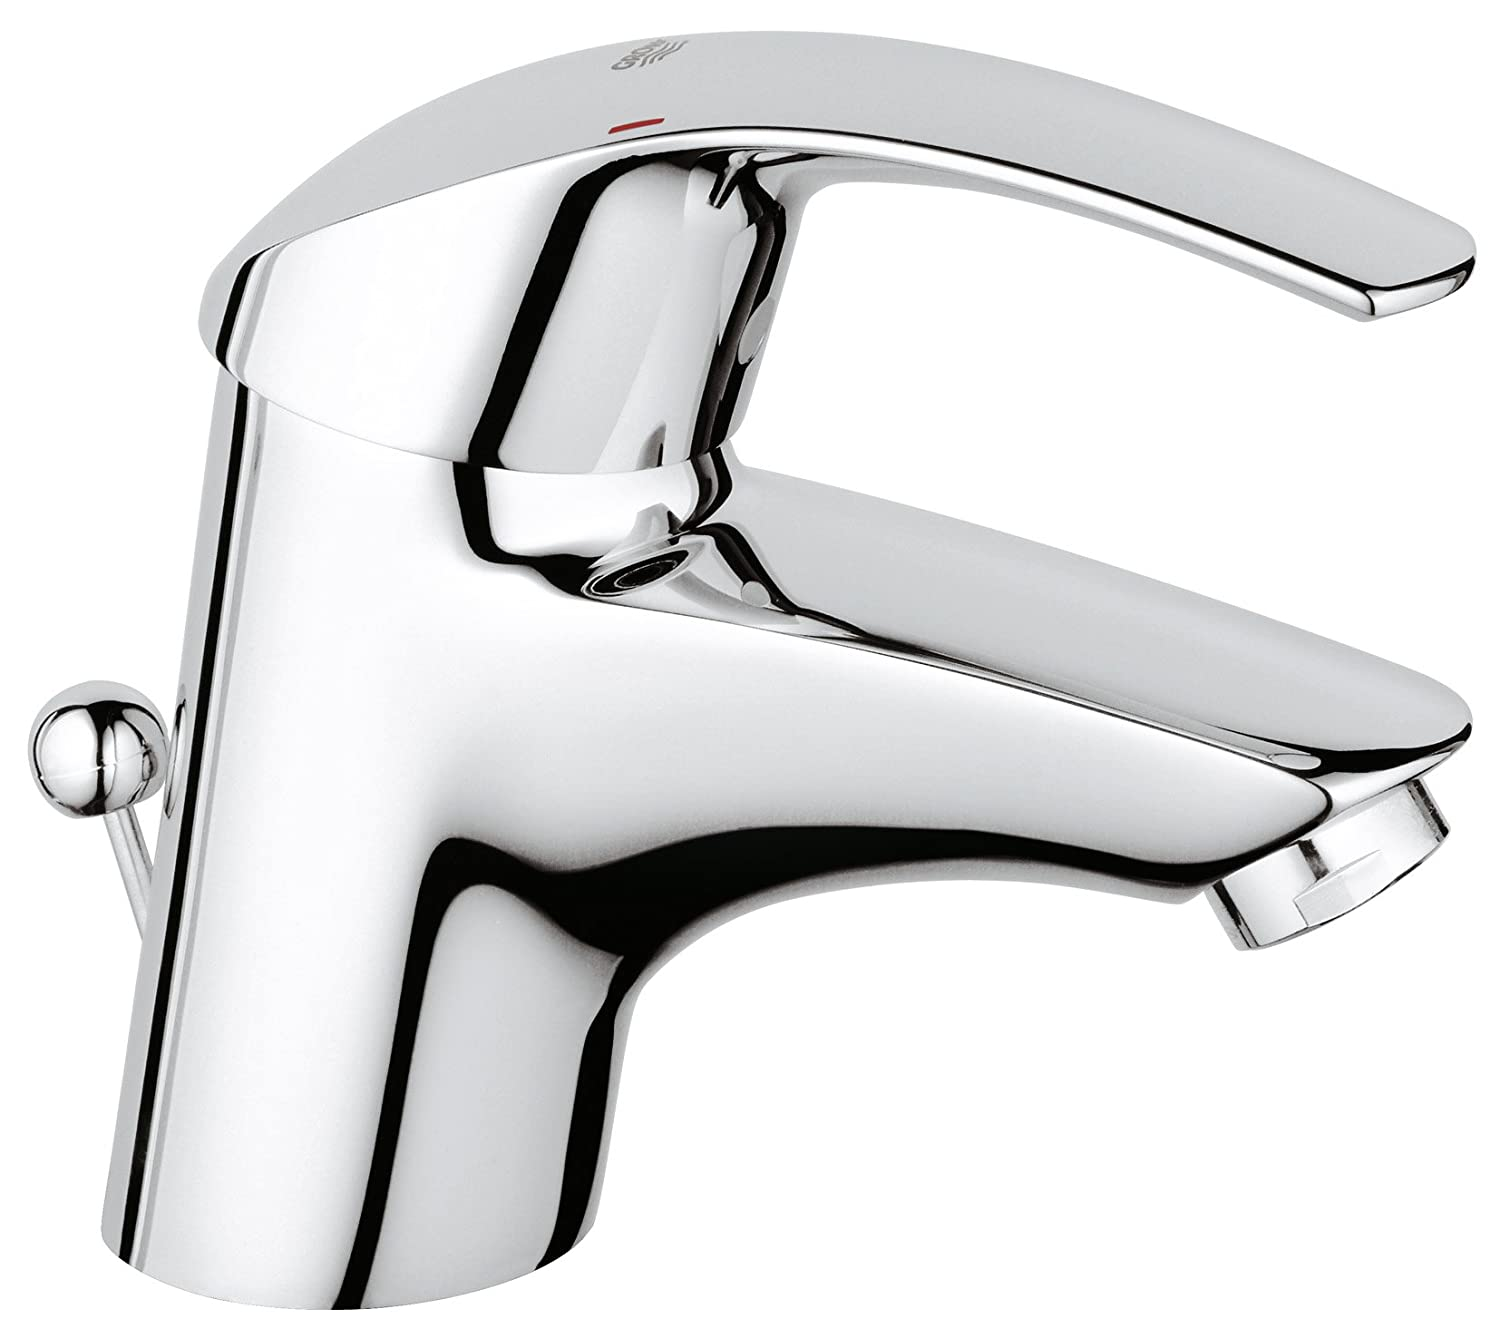 Grohe Eurosmart Chrome Single Lever Basin Mixer Amazon